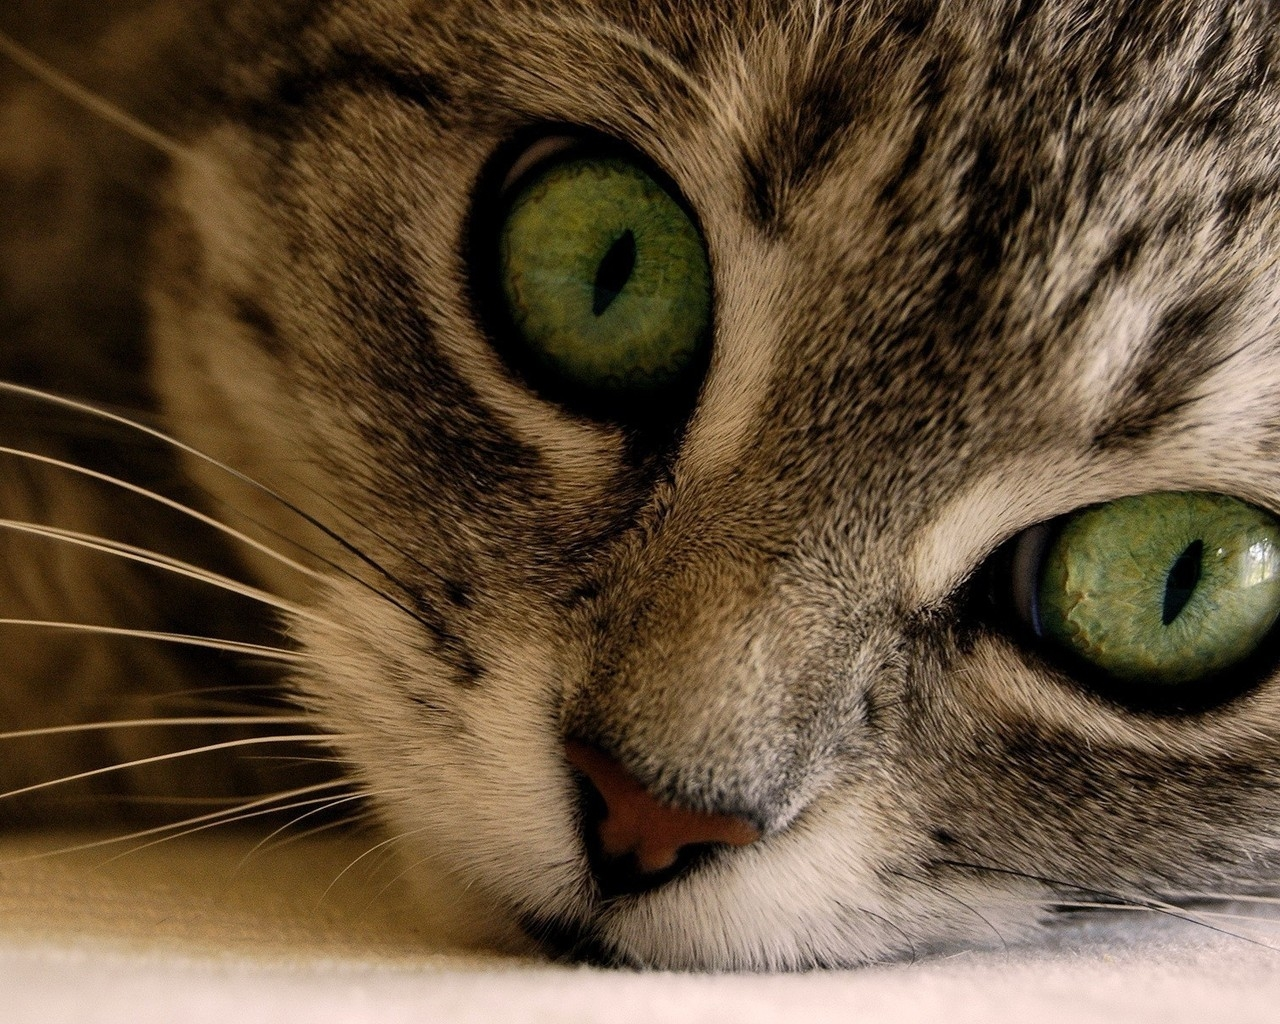 Green Eye Manx Cat for 1280 x 1024 resolution